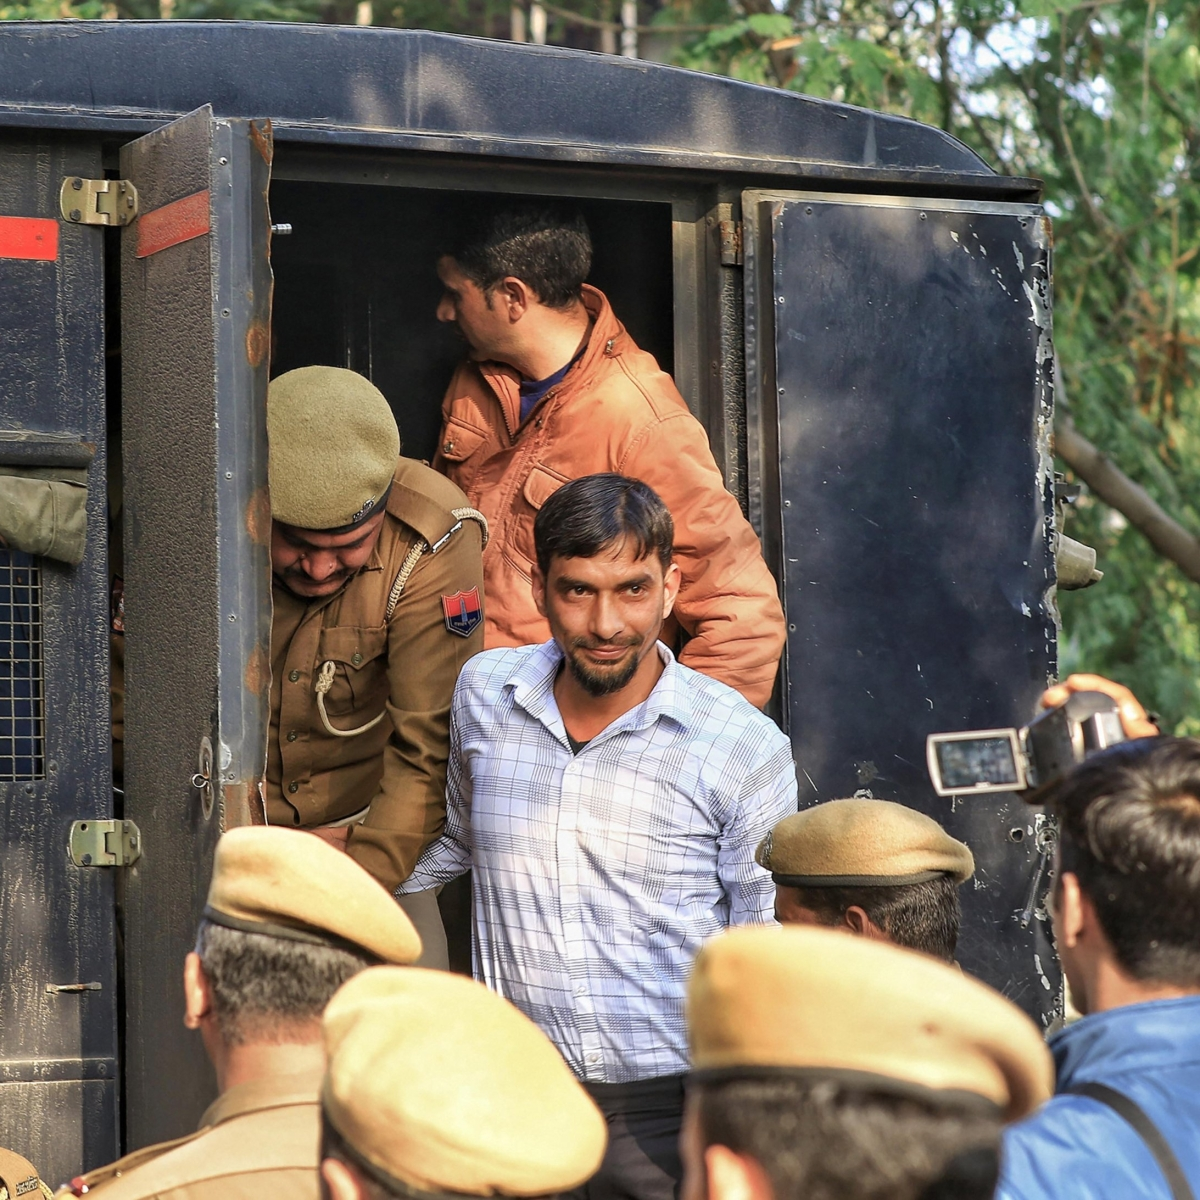 2008 Jaipur blasts: All 4 convicts sentenced to death